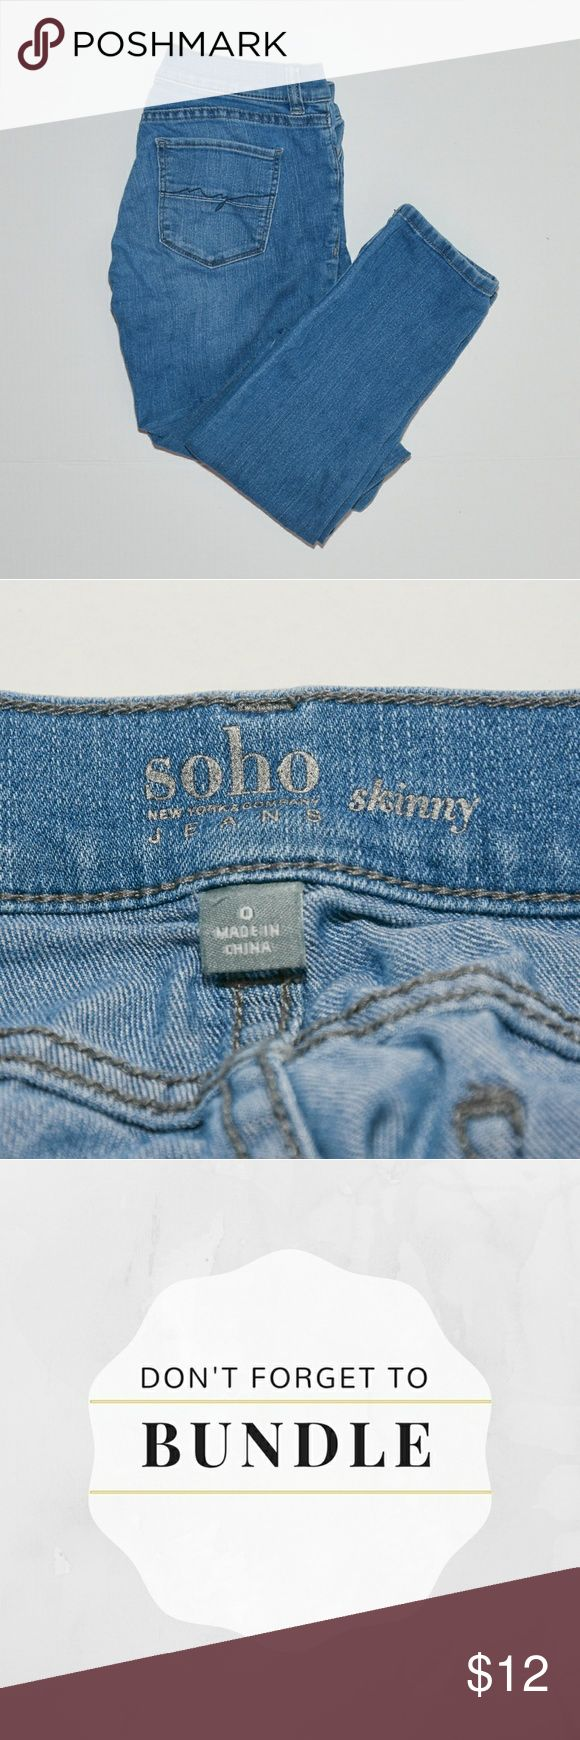 New York & Company Sohi skinny jeans These are soft like jeggins but aren't jeggins. Perfect skinny jeans to wear with flats or boots. Roll the hem 2-3x if you want to show a little ankle.  Model is 5'5  🚫 trades; reasonable offers will be considered. Smoke free, pet free. No flaws. New York & Company Jeans Skinny